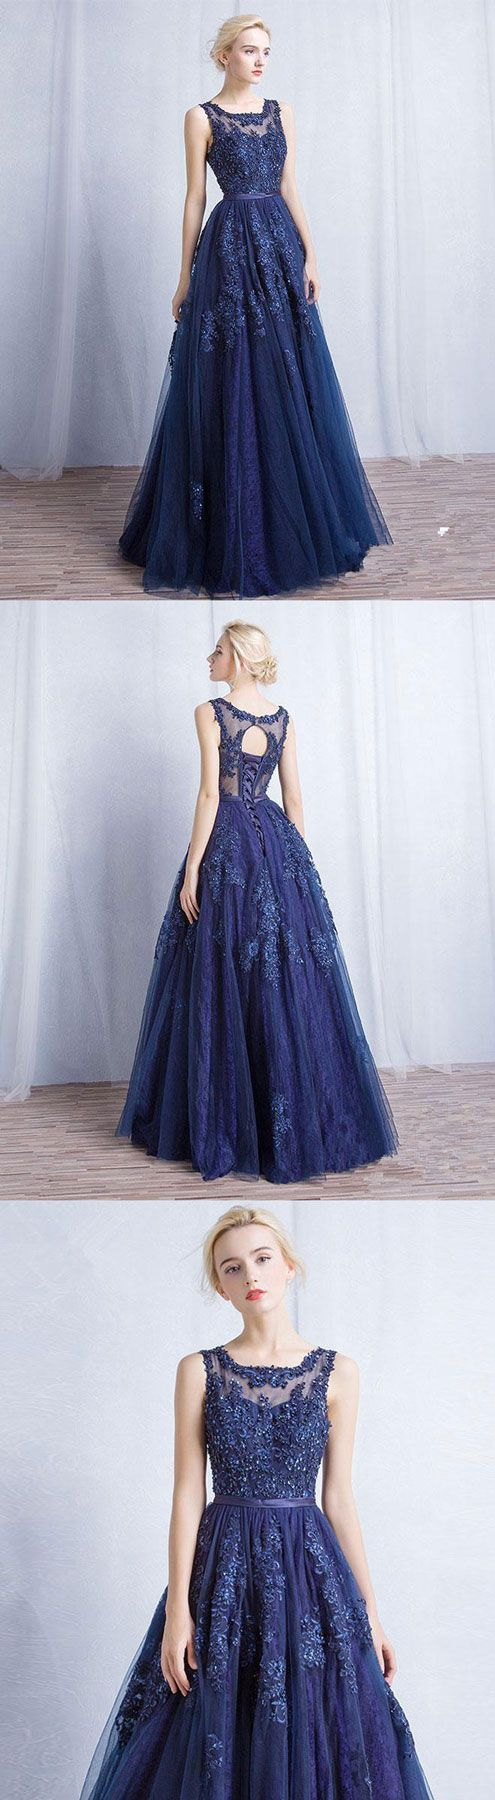 Dark blue round neck tulle lace applique long prom dress tulle